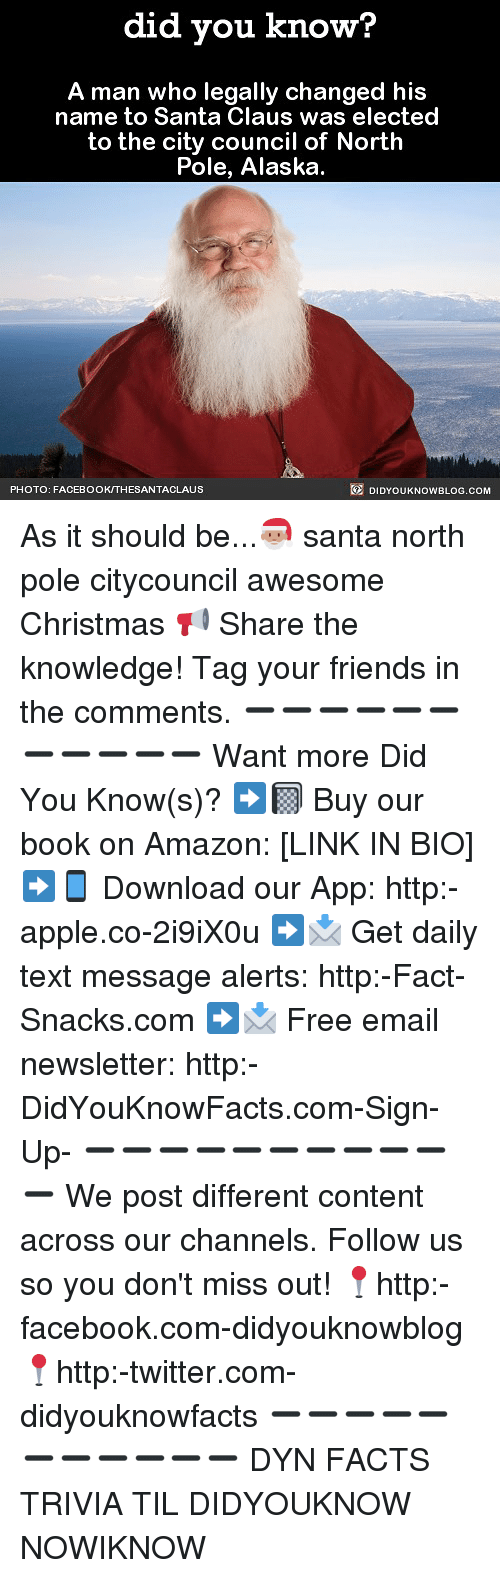 Amazon, Apple, and Christmas: did you know?  A man who legally changed his  name to Santa Claus was elected  to the city council of North  Pole, Alaska  PHOTO: FACEBOOK/THESANTACLAUS  DIDYOUKNOWBLOG.COM As it should be...🎅🏽 santa north pole citycouncil awesome Christmas 📢 Share the knowledge! Tag your friends in the comments. ➖➖➖➖➖➖➖➖➖➖➖ Want more Did You Know(s)? ➡📓 Buy our book on Amazon: [LINK IN BIO] ➡📱 Download our App: http:-apple.co-2i9iX0u ➡📩 Get daily text message alerts: http:-Fact-Snacks.com ➡📩 Free email newsletter: http:-DidYouKnowFacts.com-Sign-Up- ➖➖➖➖➖➖➖➖➖➖➖ We post different content across our channels. Follow us so you don't miss out! 📍http:-facebook.com-didyouknowblog 📍http:-twitter.com-didyouknowfacts ➖➖➖➖➖➖➖➖➖➖➖ DYN FACTS TRIVIA TIL DIDYOUKNOW NOWIKNOW